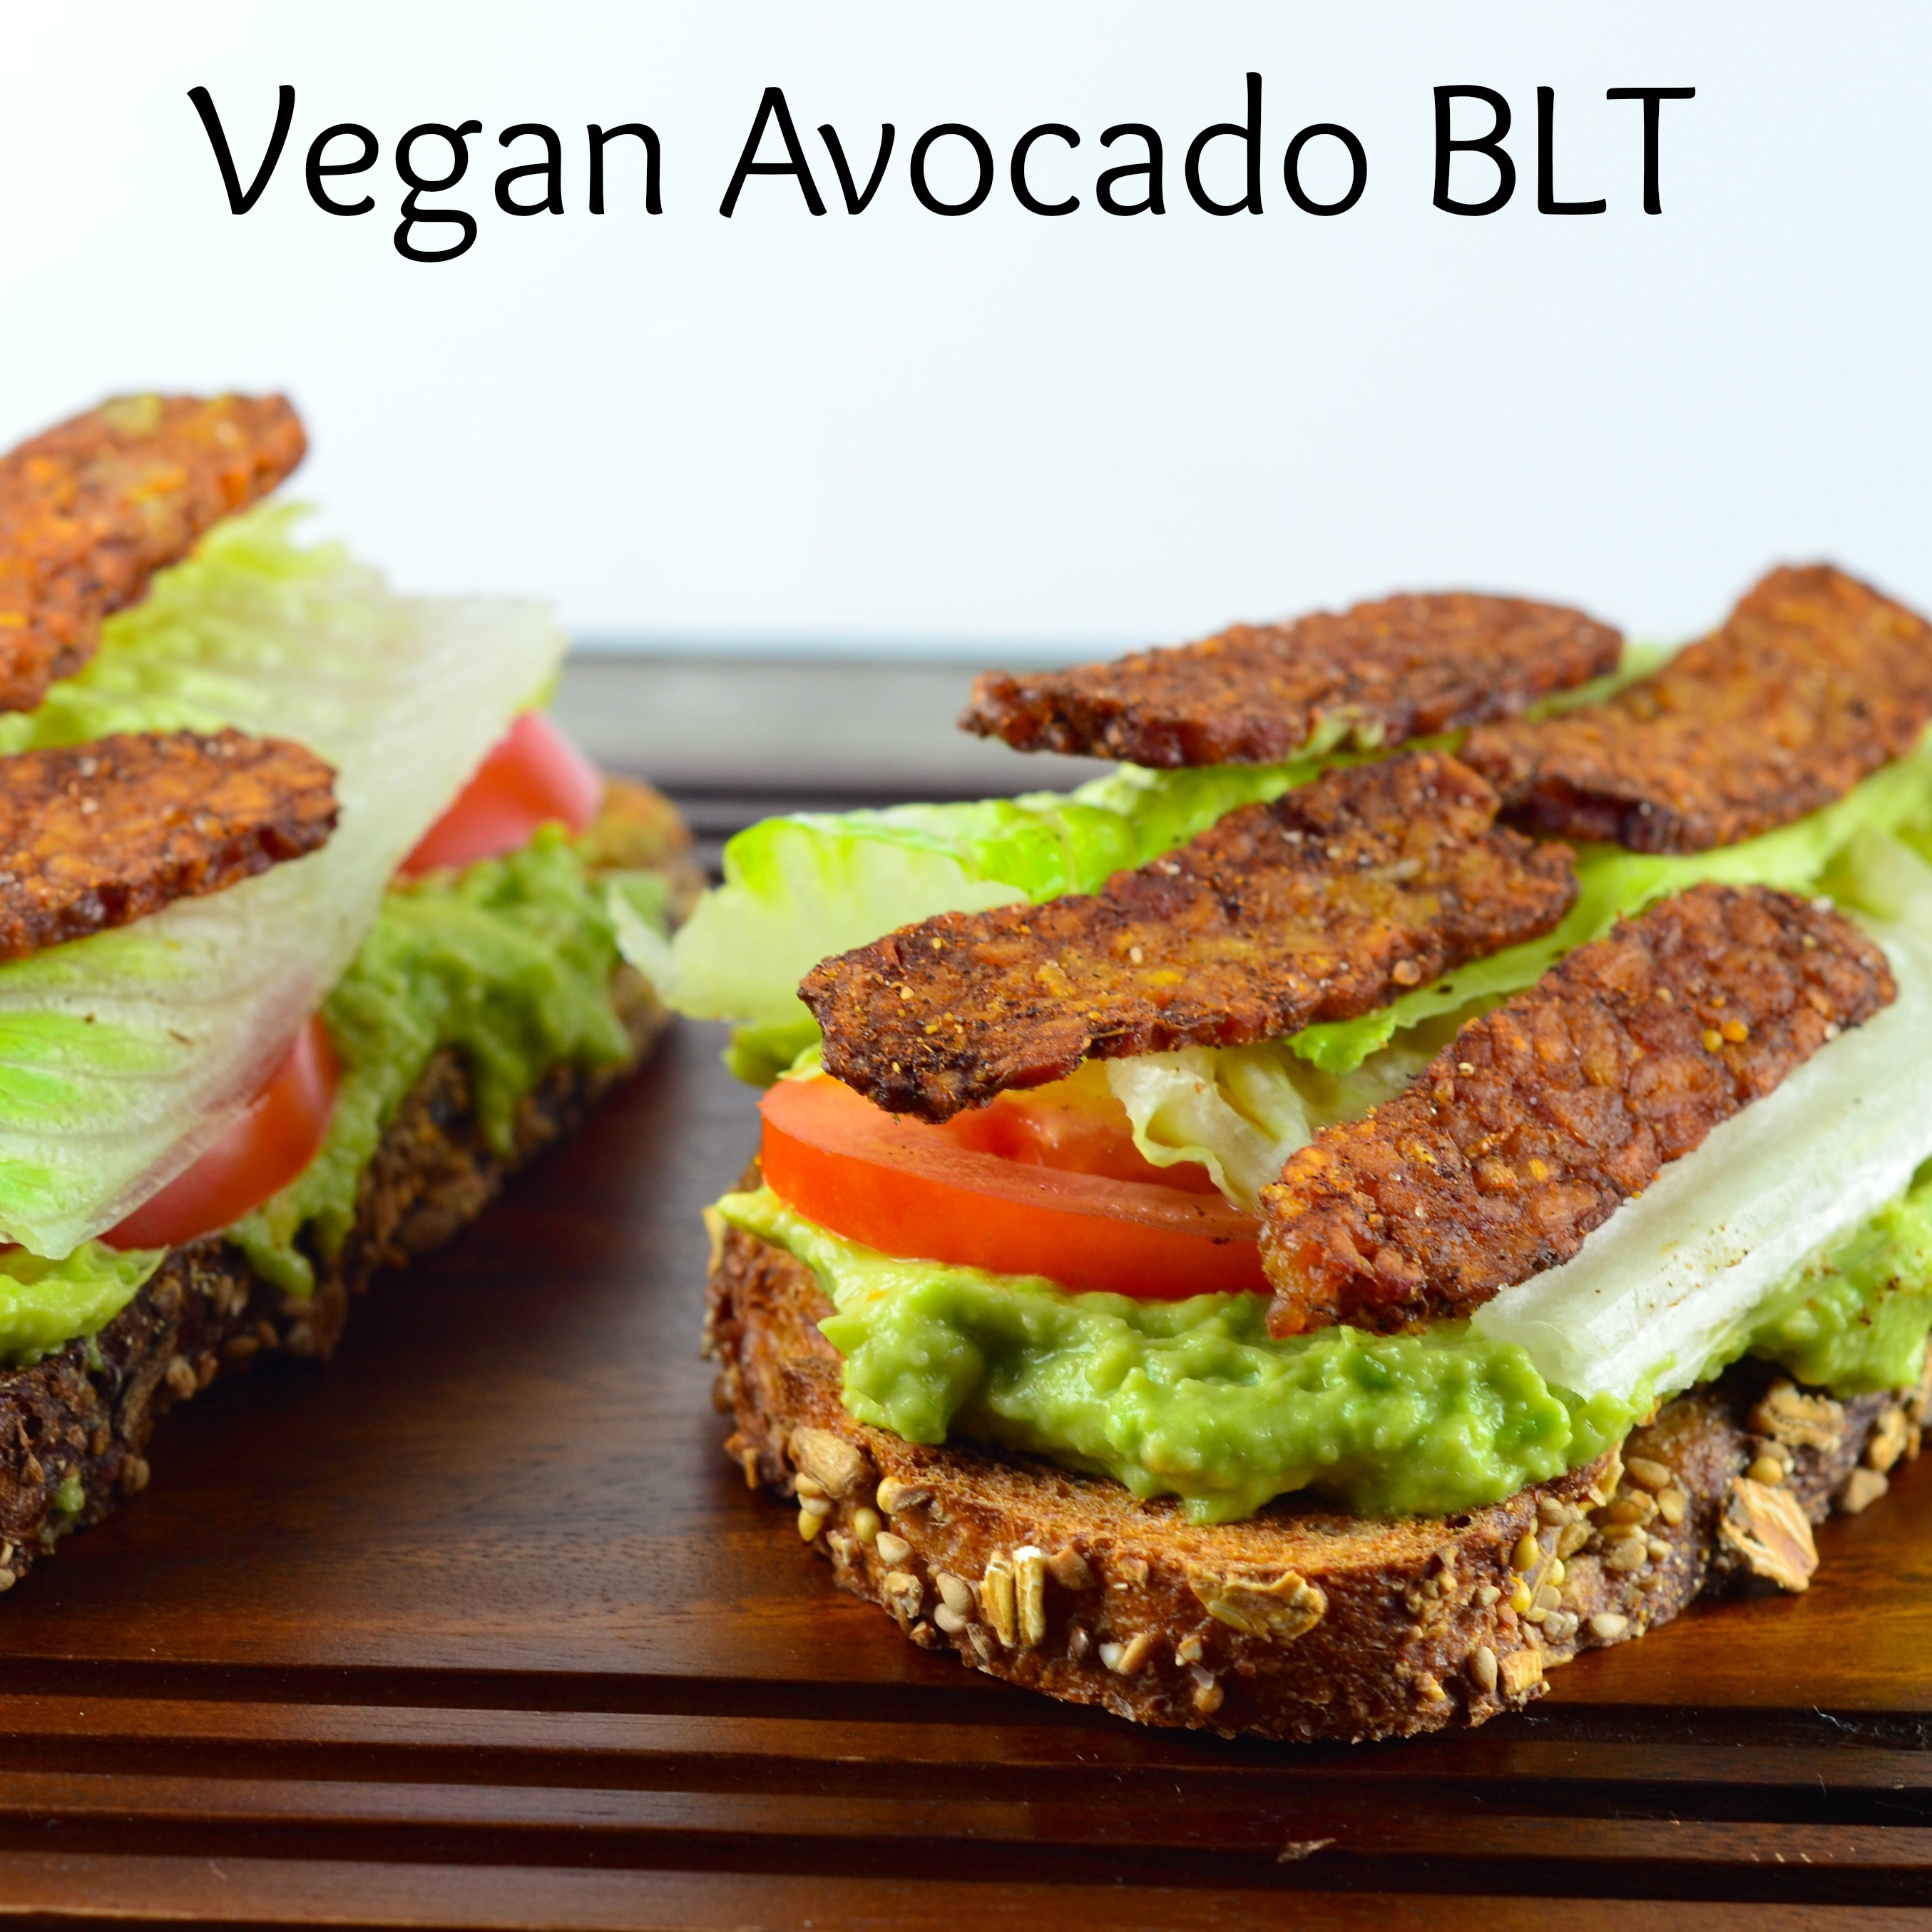 Vegan Avocado BLT - #sandwich #BLT #Vegan #kosher #avocado #tomato ...